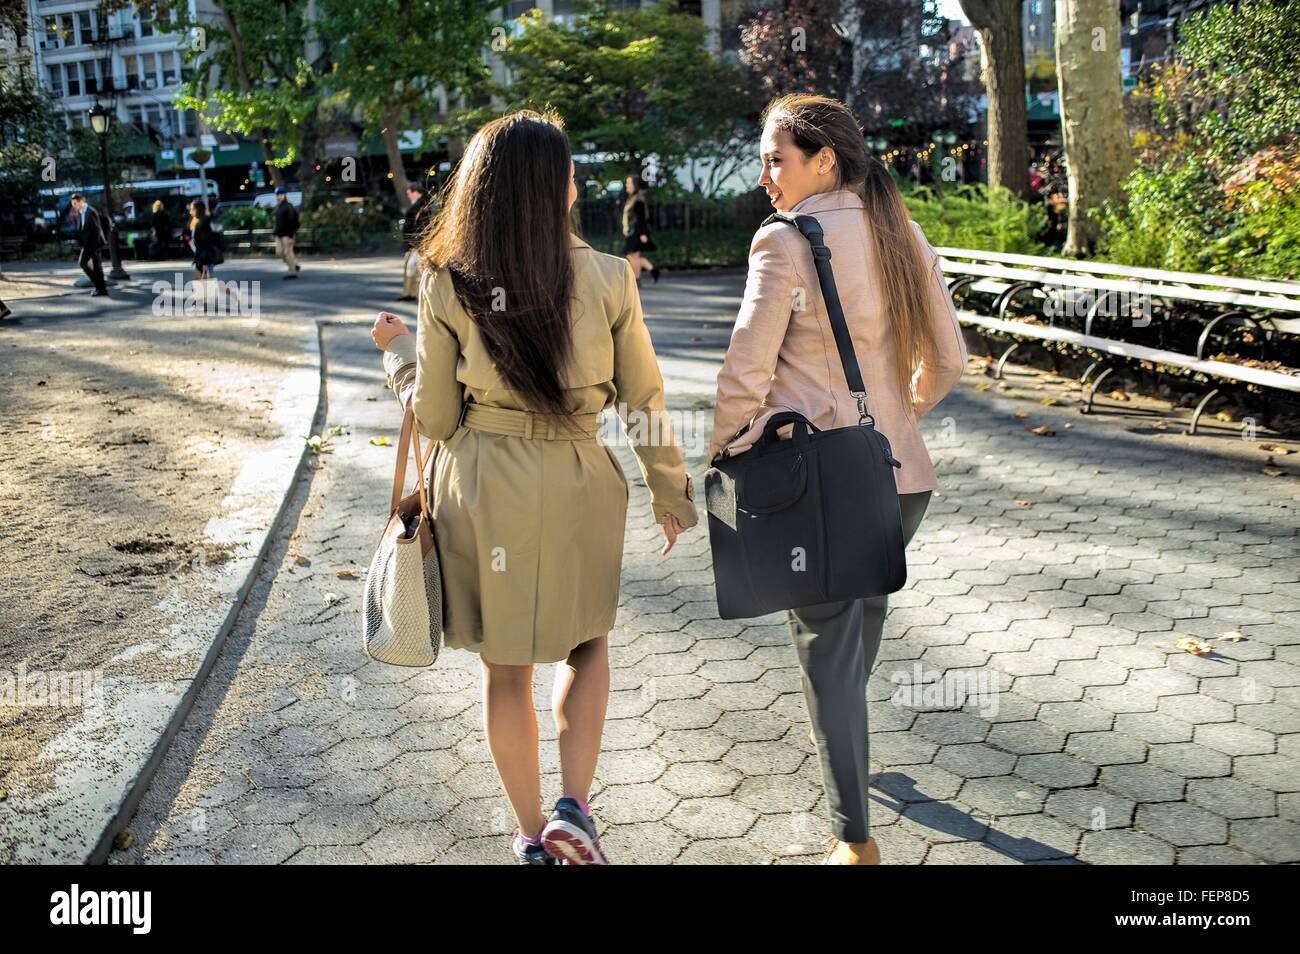 Rear view of young female twins walking through city park Stock Photo